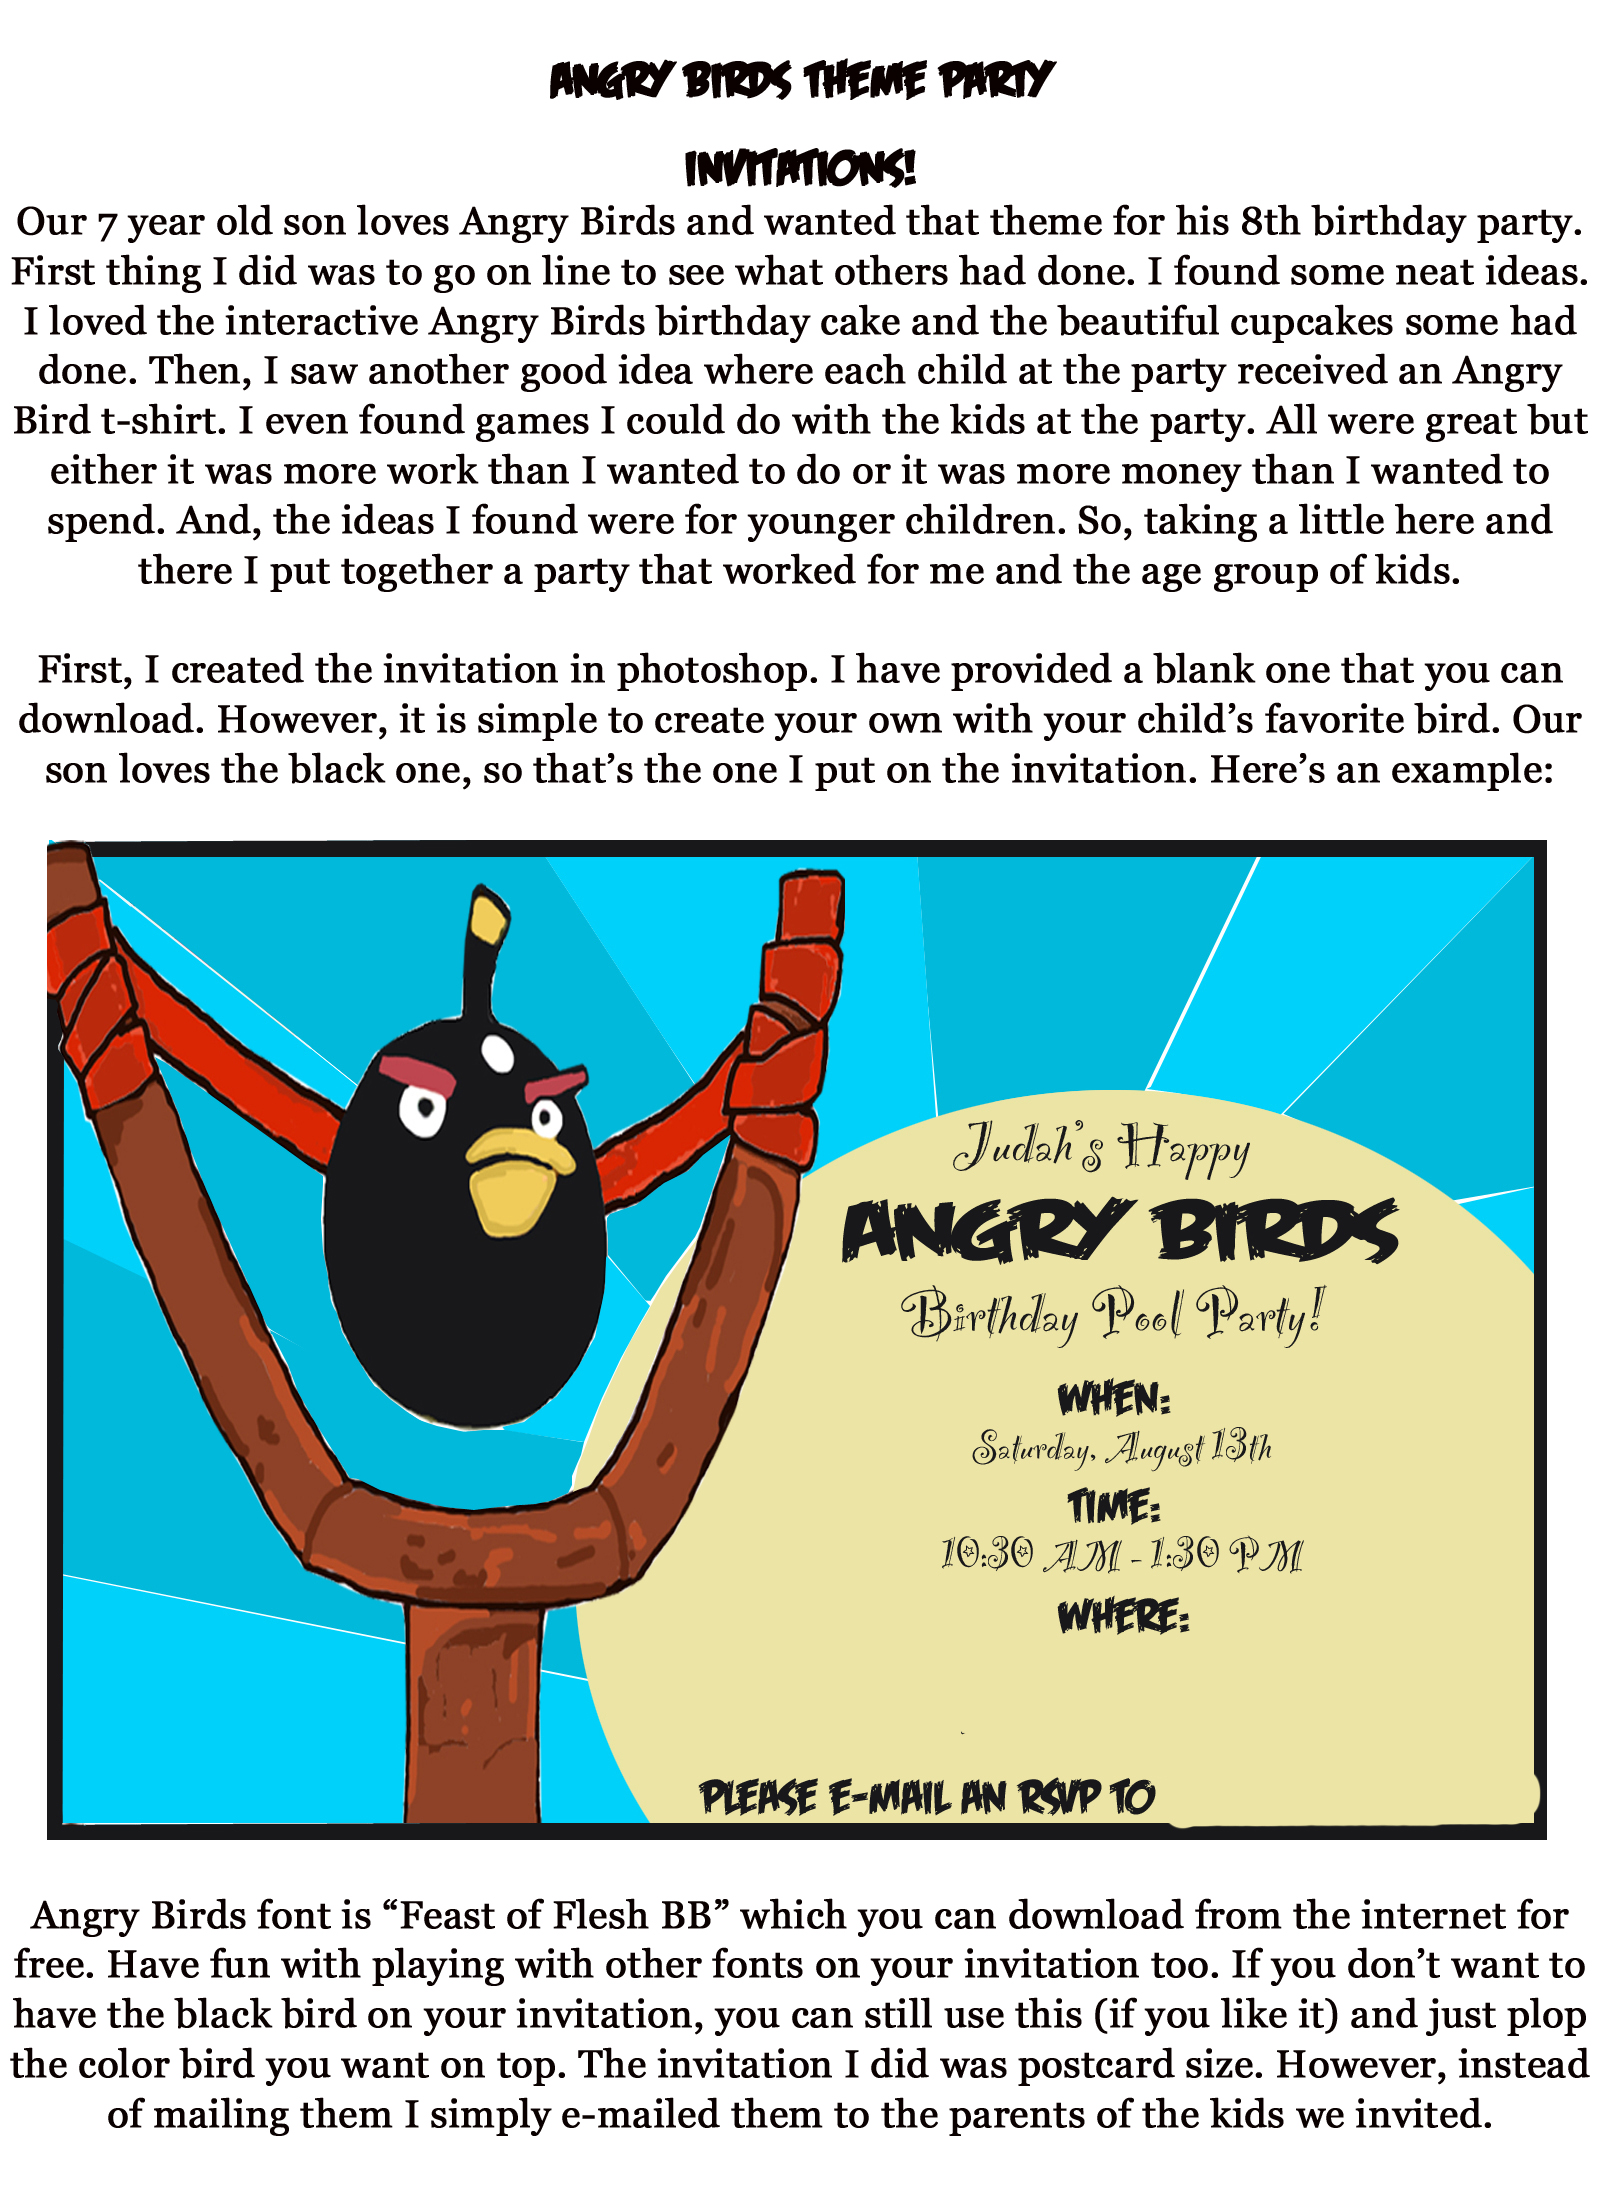 Angry Birds party decorations and food | bashert04